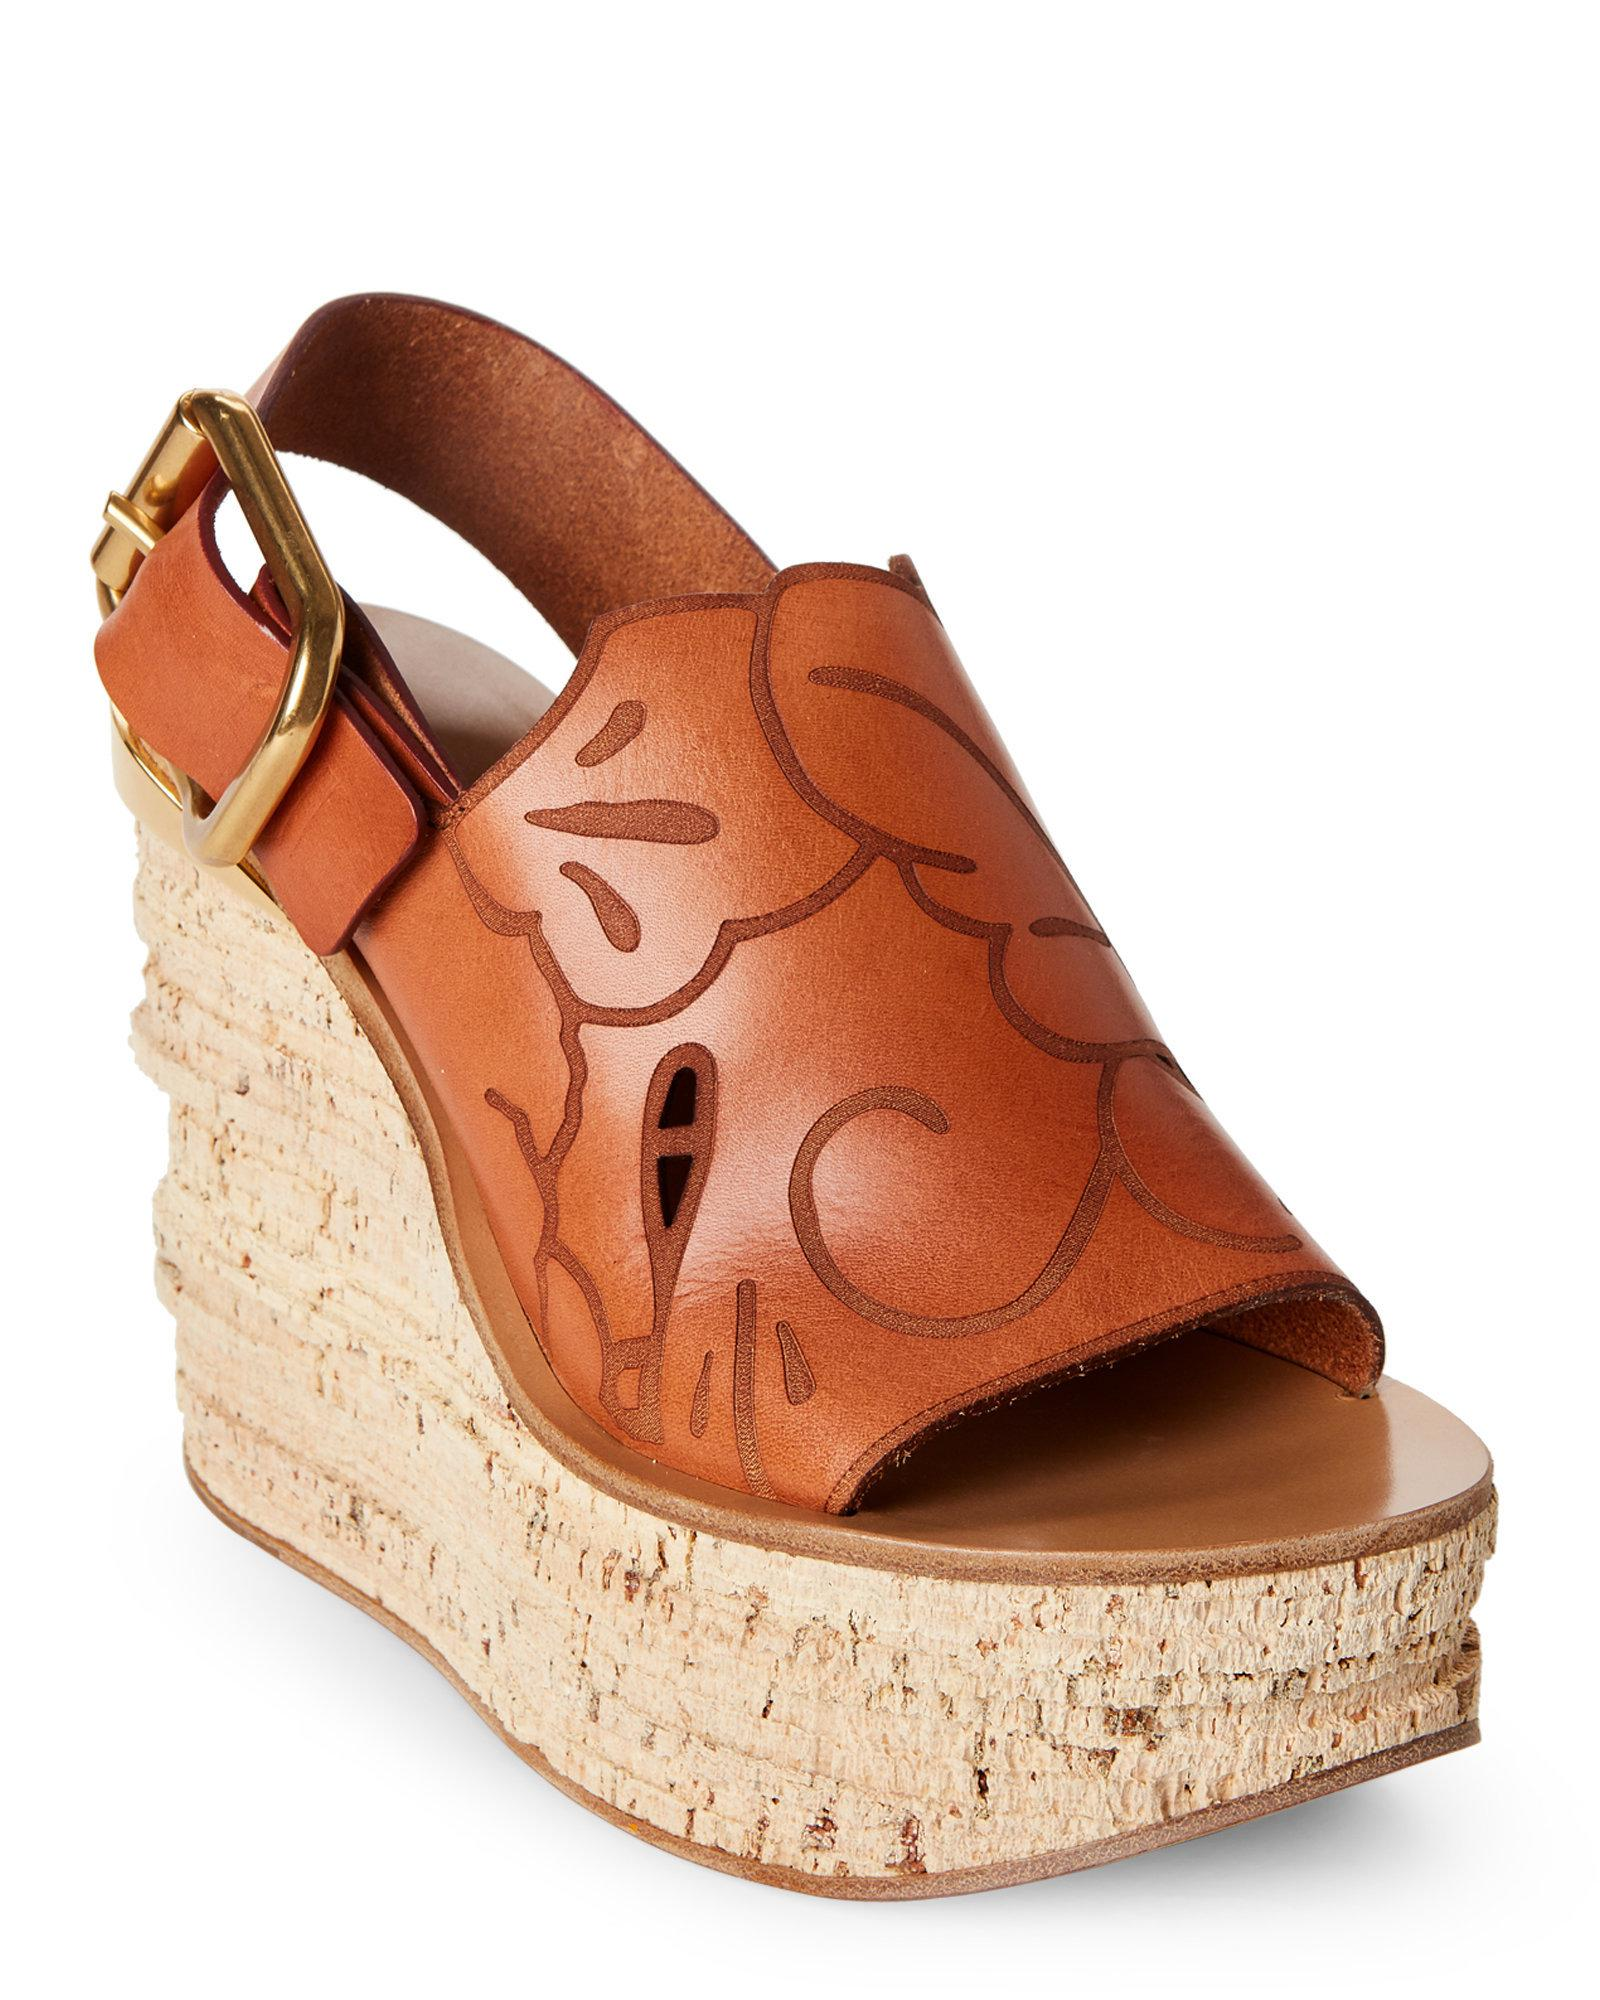 272f42a140e2 Lyst - Chloé Cognac Etched Leather Wedge Sandals in Brown